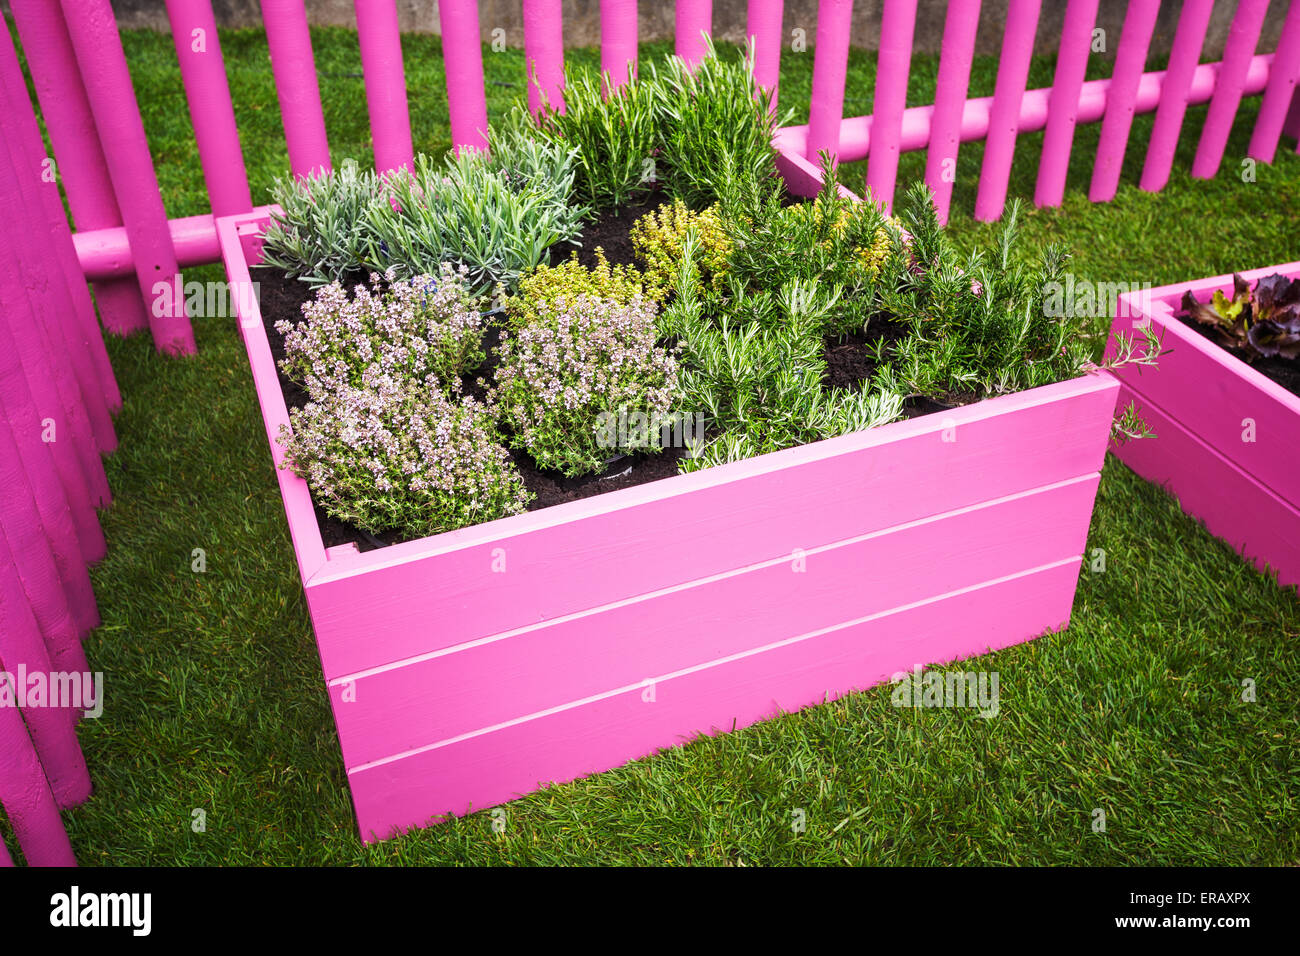 Herb garden. Pink raised beds with herbs and vegetables ... on raised garden planters, raised garden boxes, planter box designs, small backyard designs, raised garden trellis designs, raised garden planting designs, raised garden planting layout, wooden raised bed designs, raised flower bed designs, raised garden plans, cottage designs, raised vegetable garden box, raised garden ideas, raised chicken coop designs, raised patio designs, back patio designs, raised garden beds, raised fireplace designs, raised garden table, raised garden planting guide,